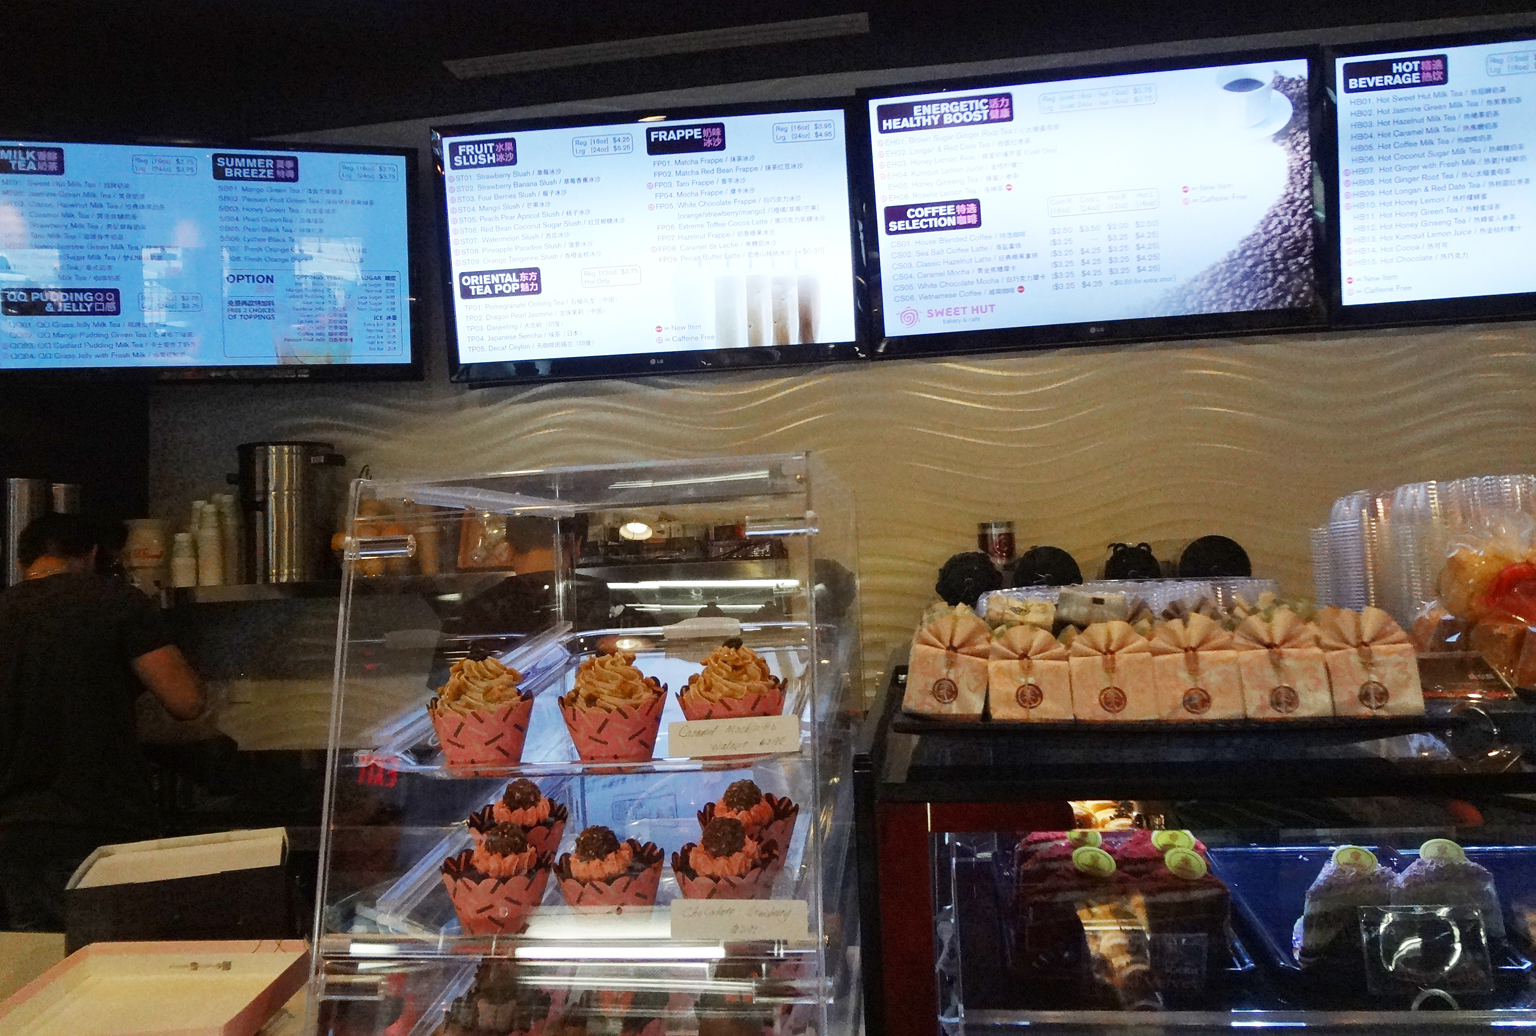 The menu and order counter